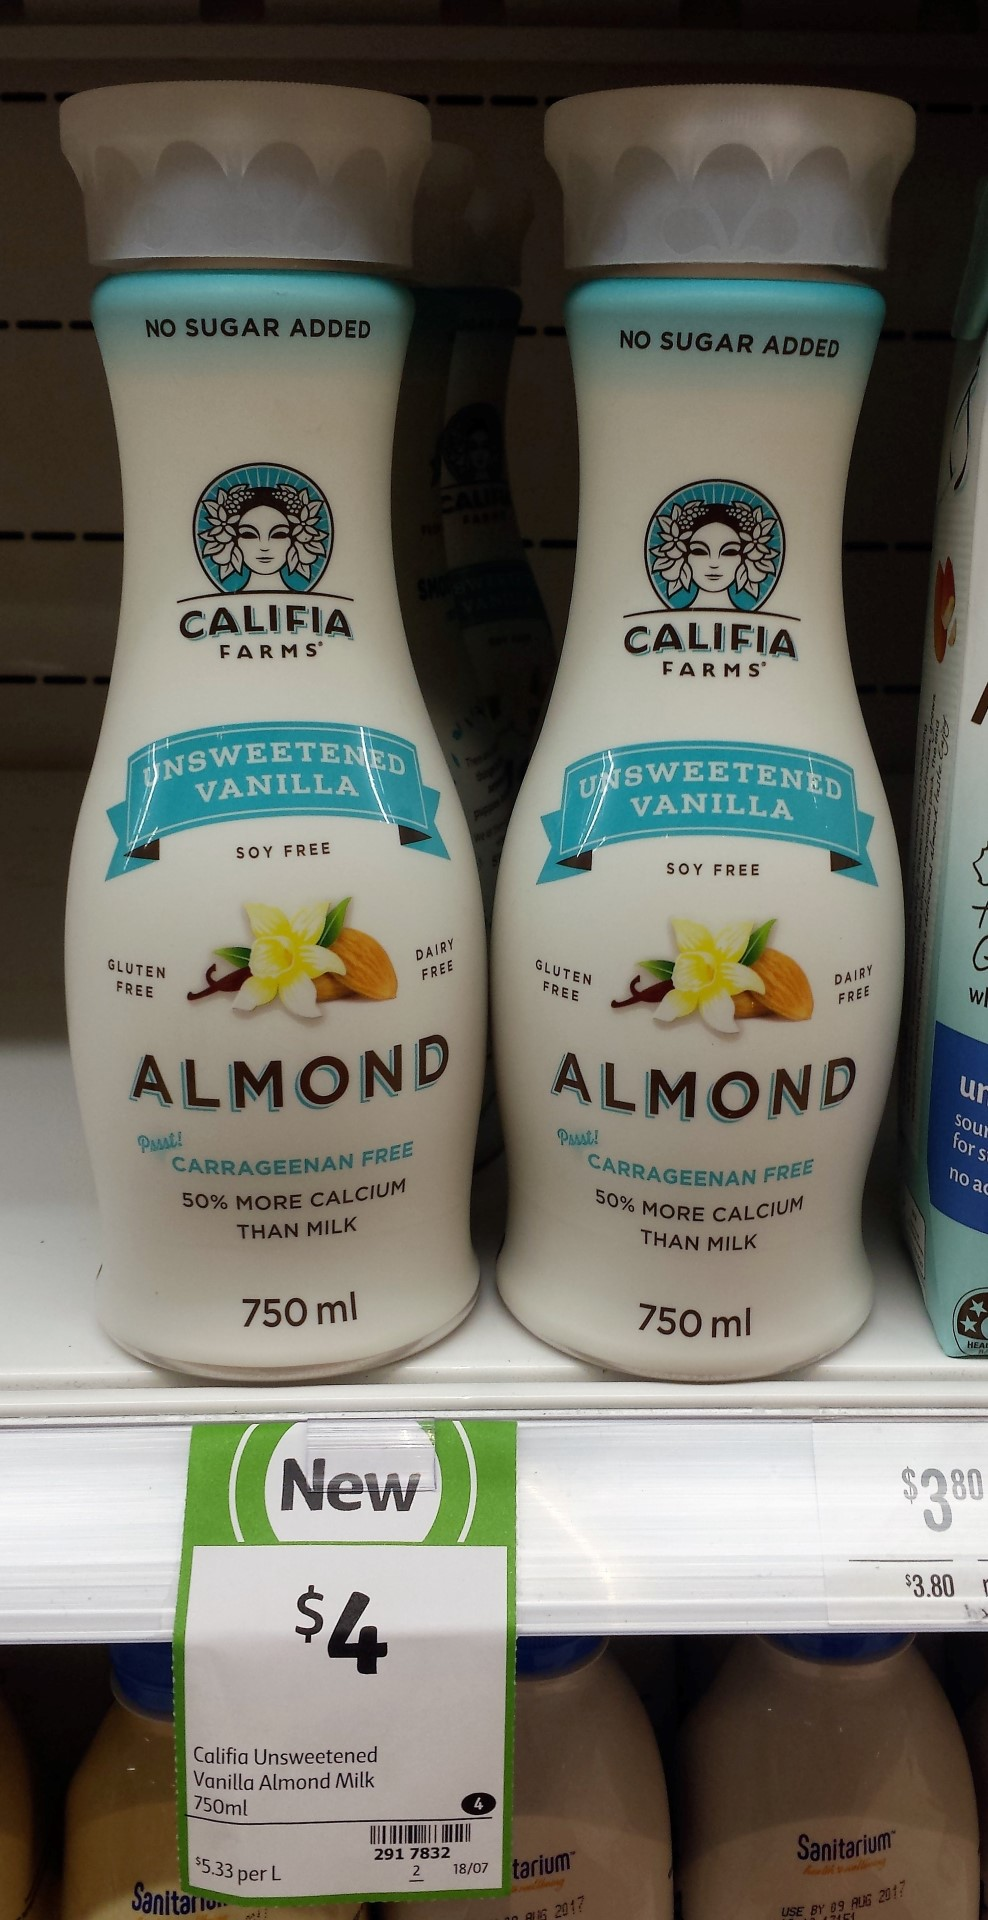 The Best Almond Milk Is Califia Barista Blend | Bon Appetit